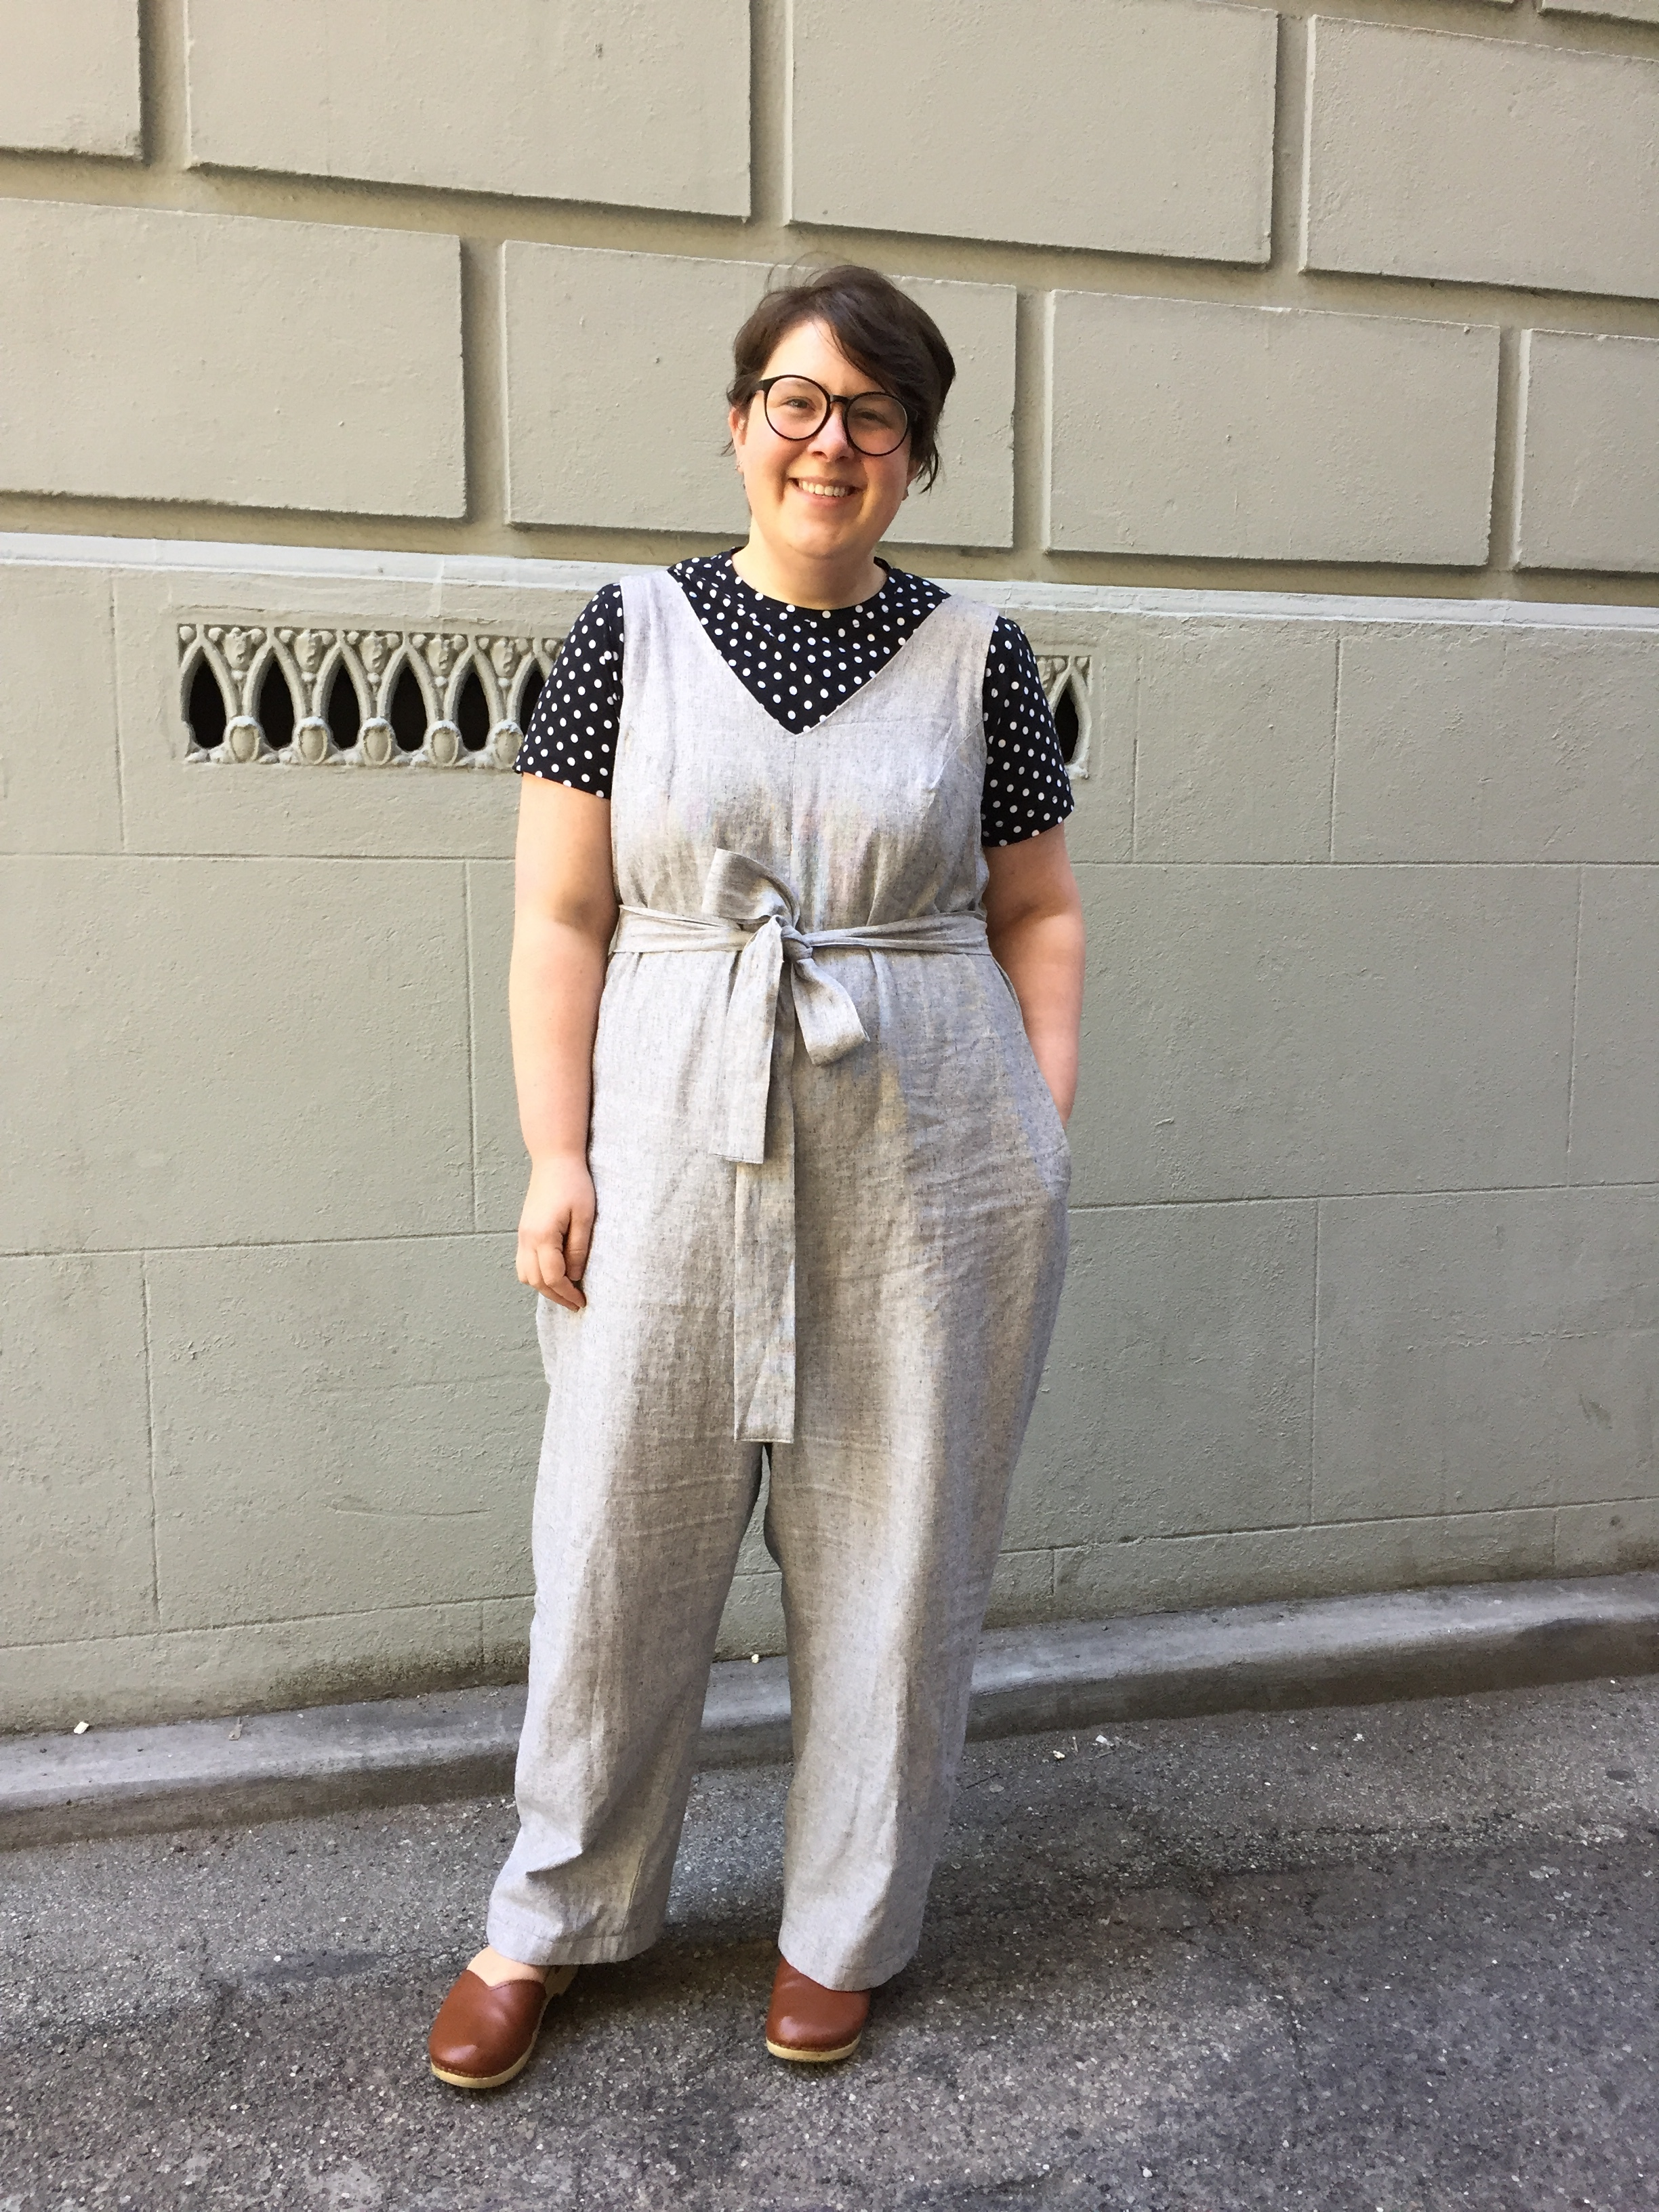 May 22: Peppermint Jumpsuit from In the Folds & my first sewn tshirt! Peak T-Shirt from Wendy Ward's book!